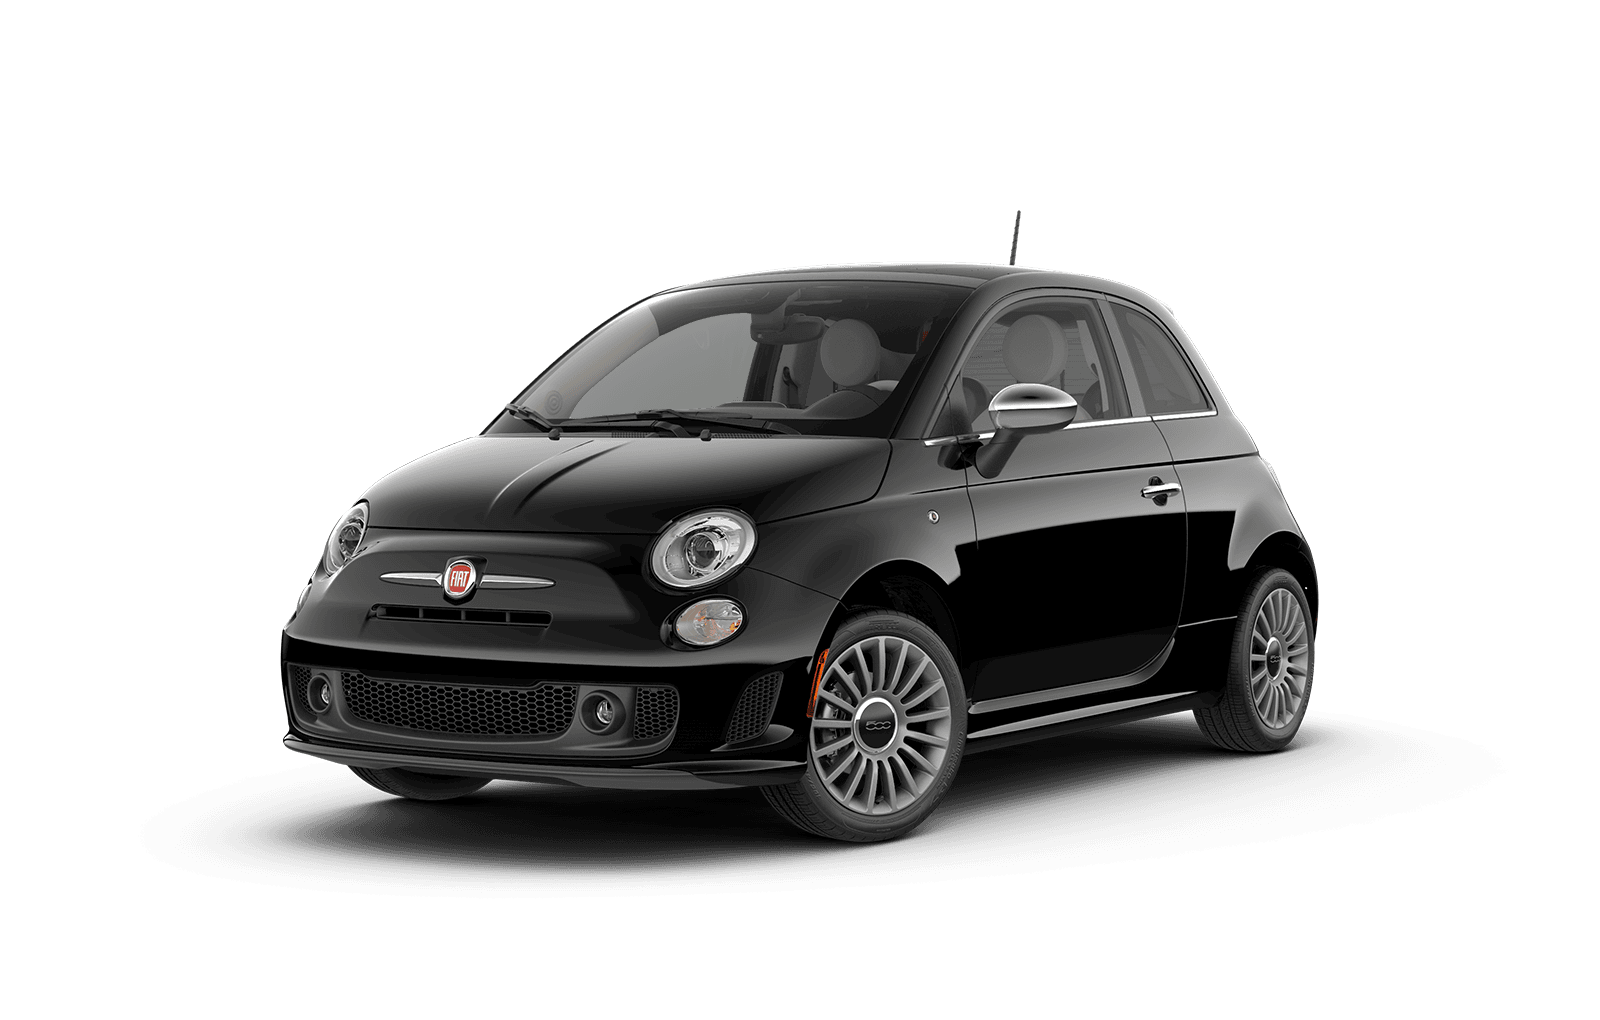 2018 FIAT 500 Full View in Black with Wheels